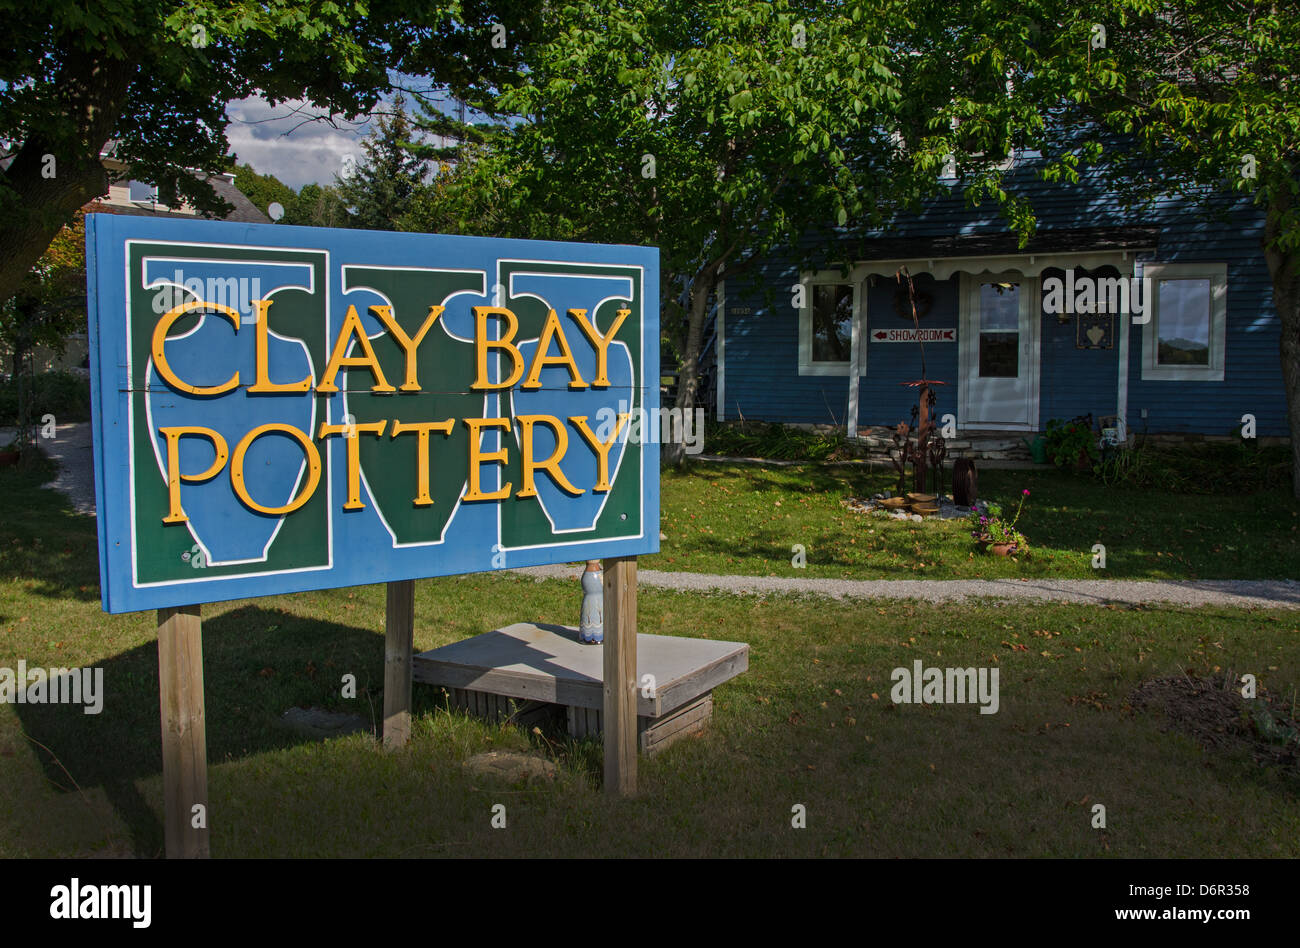 Clay Bay Pottery is in the Door County town of Ellison Bay, Wisconsin which is known for its pottery and craft shops. - Stock Image